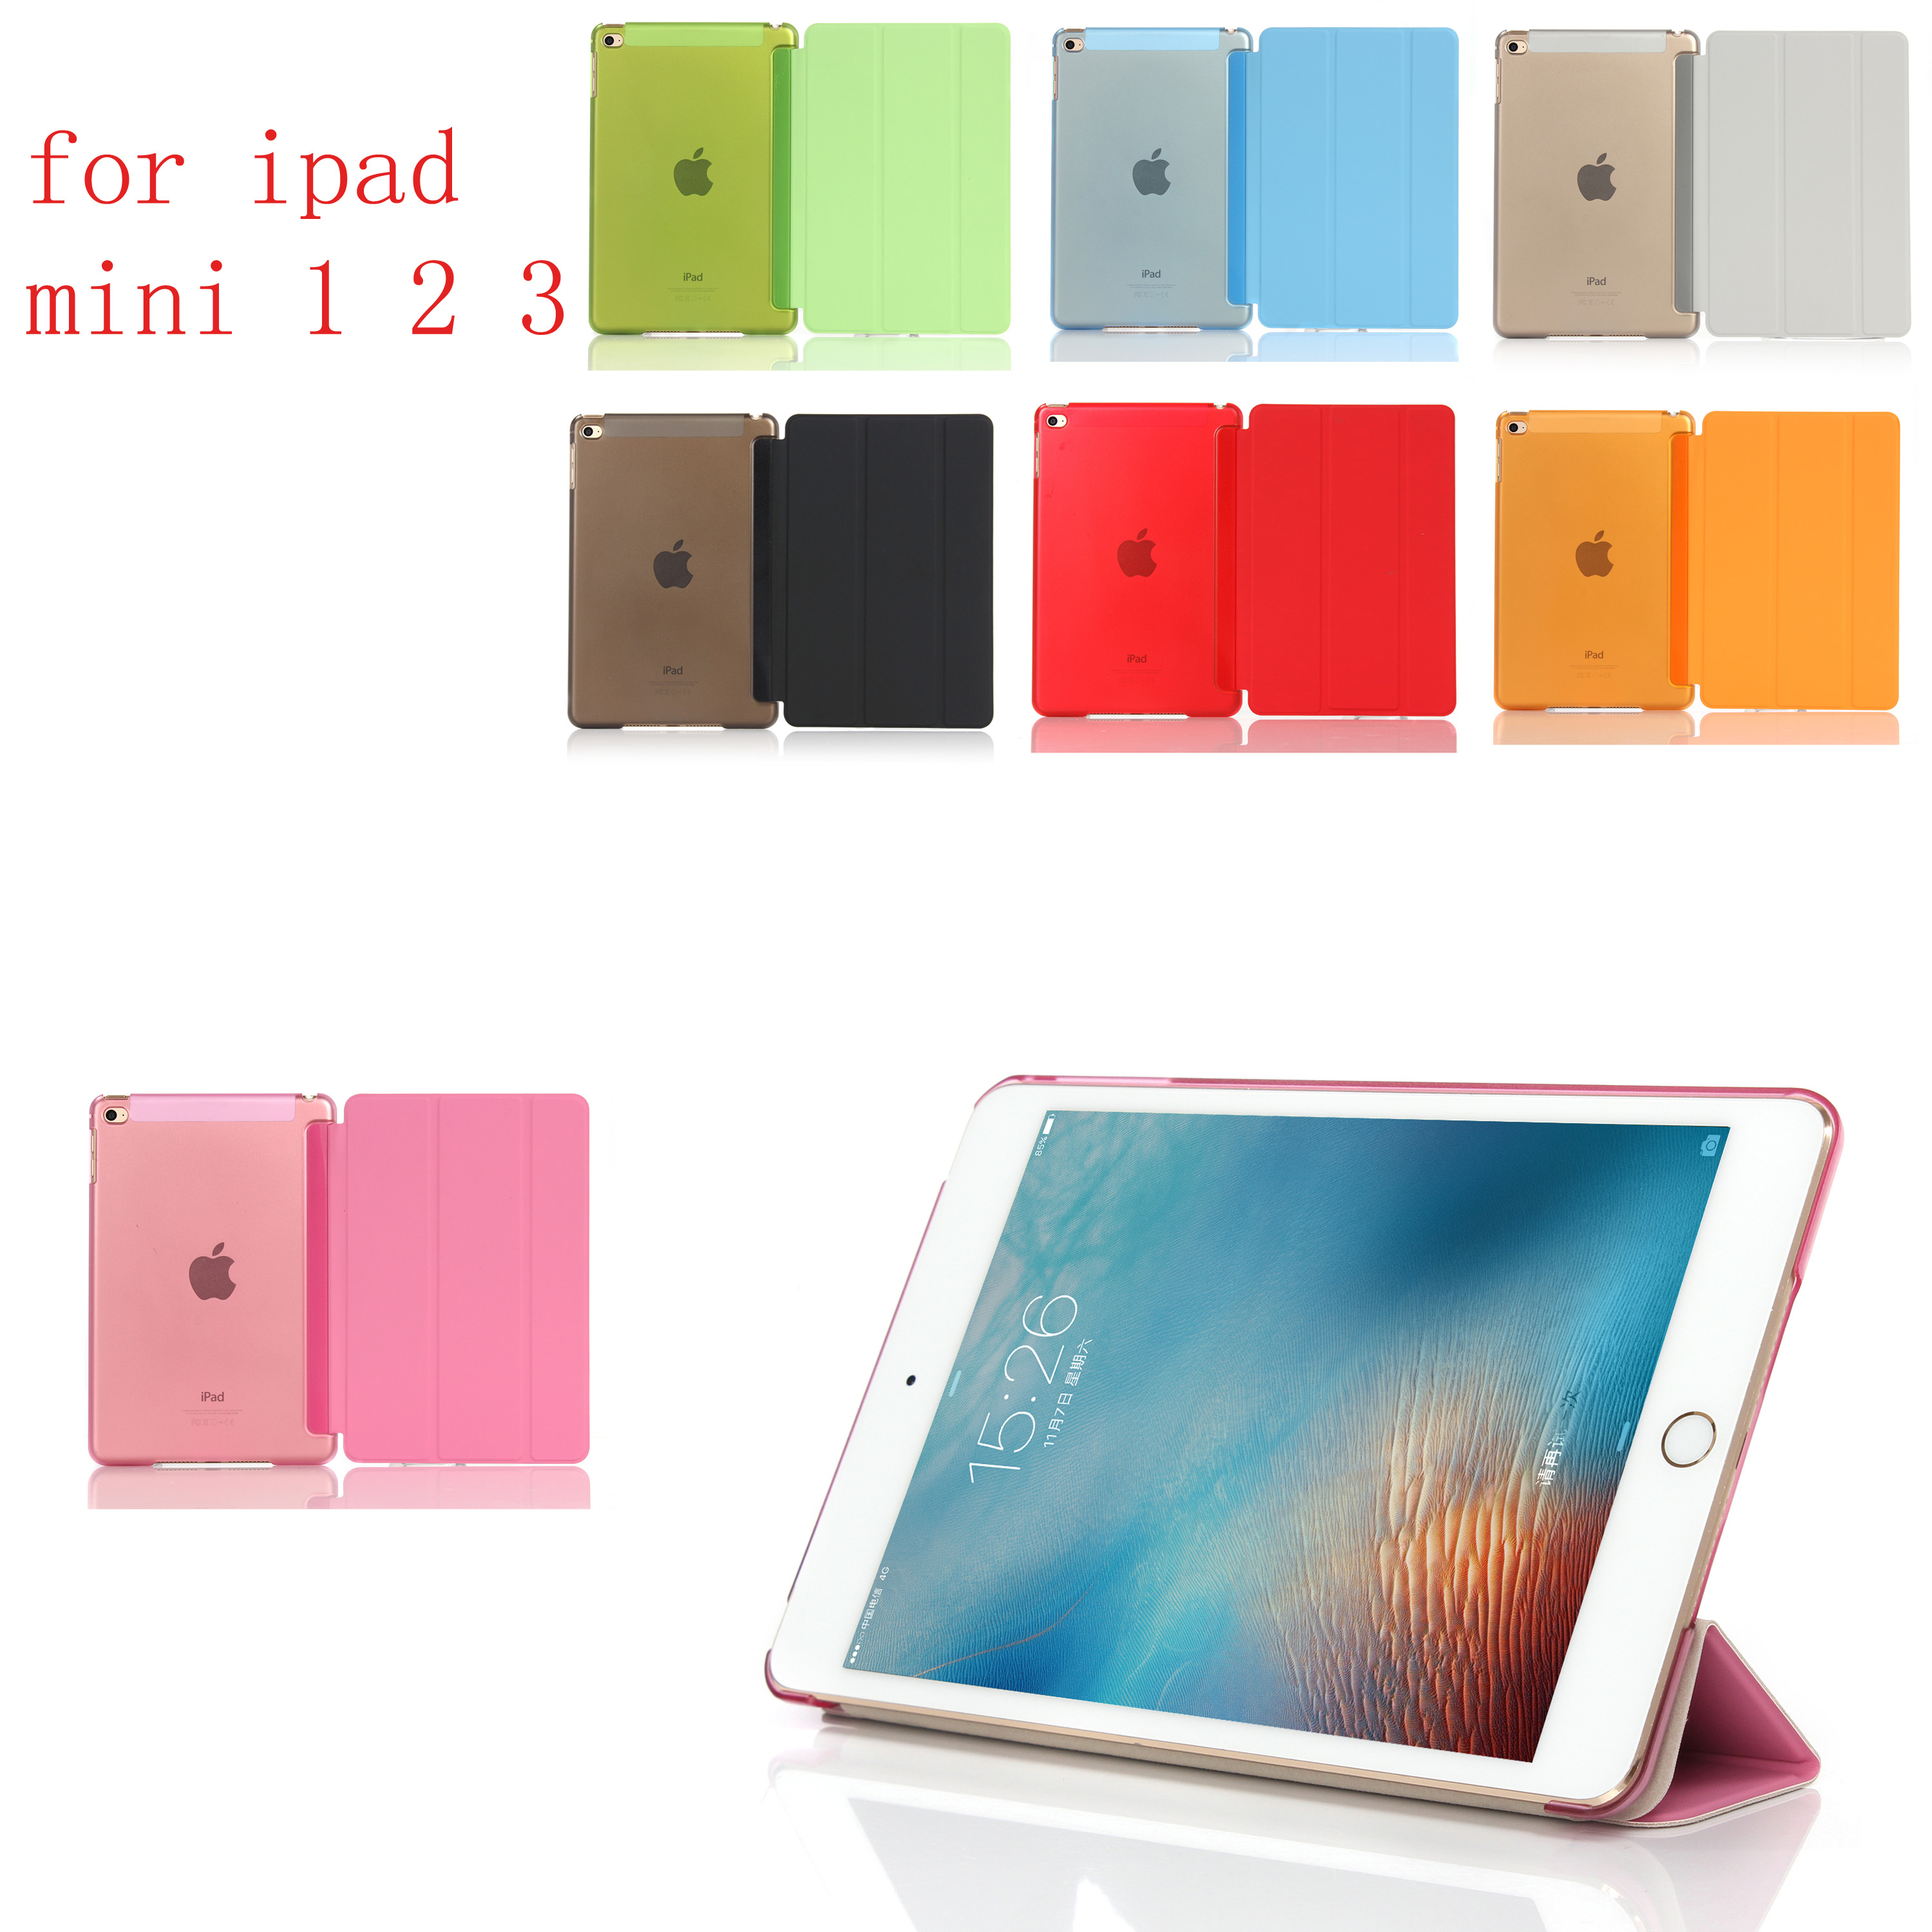 Tablet Case For ipad Mini 1 2 3 PU Ultra Slim Magnet Sleep wake up Smart Cover Shell For A1432 A1454 A1489 A1491 A1599 A1600 in Tablets e Books Case from Computer Office